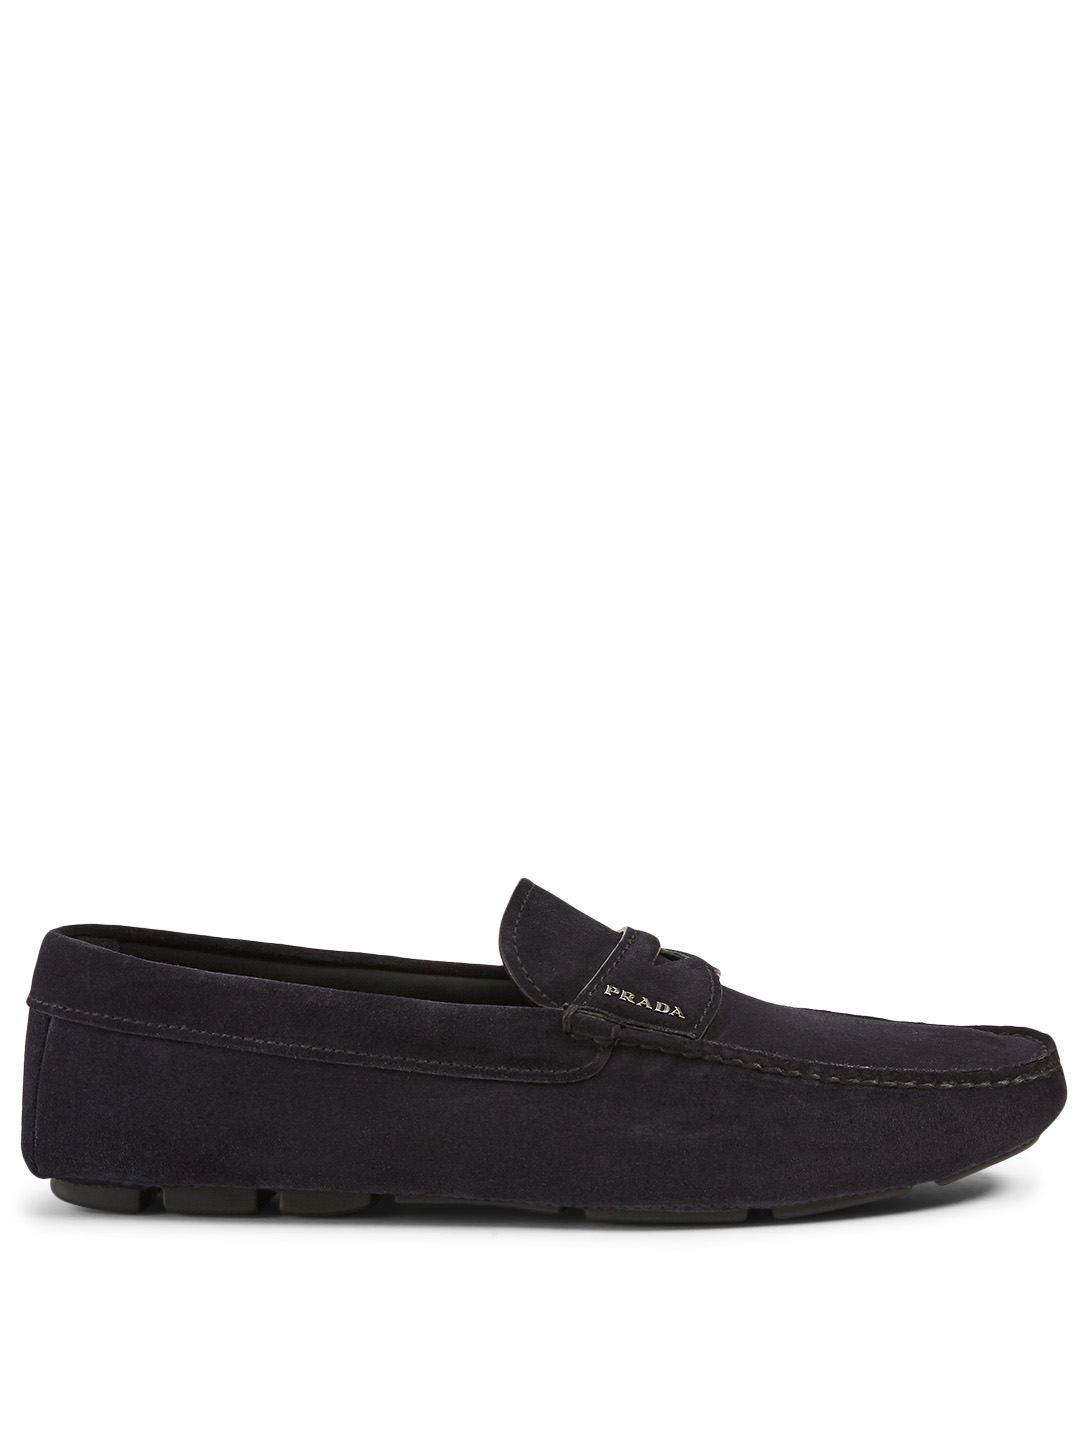 PRADA Suede Driver Shoes Men's Blue